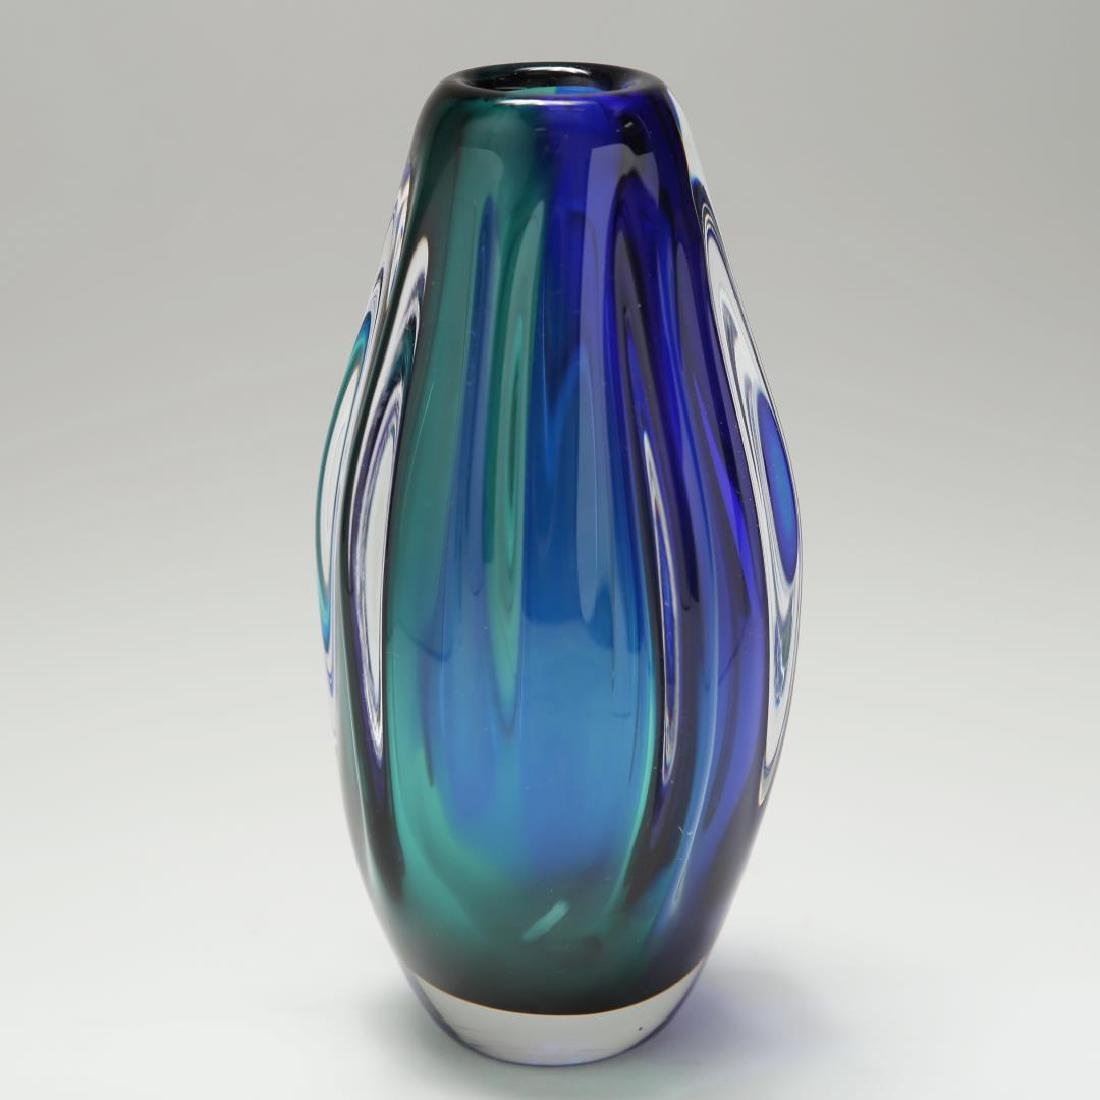 Murano Sommerso Glass Vase, Cobalt Blue & Green